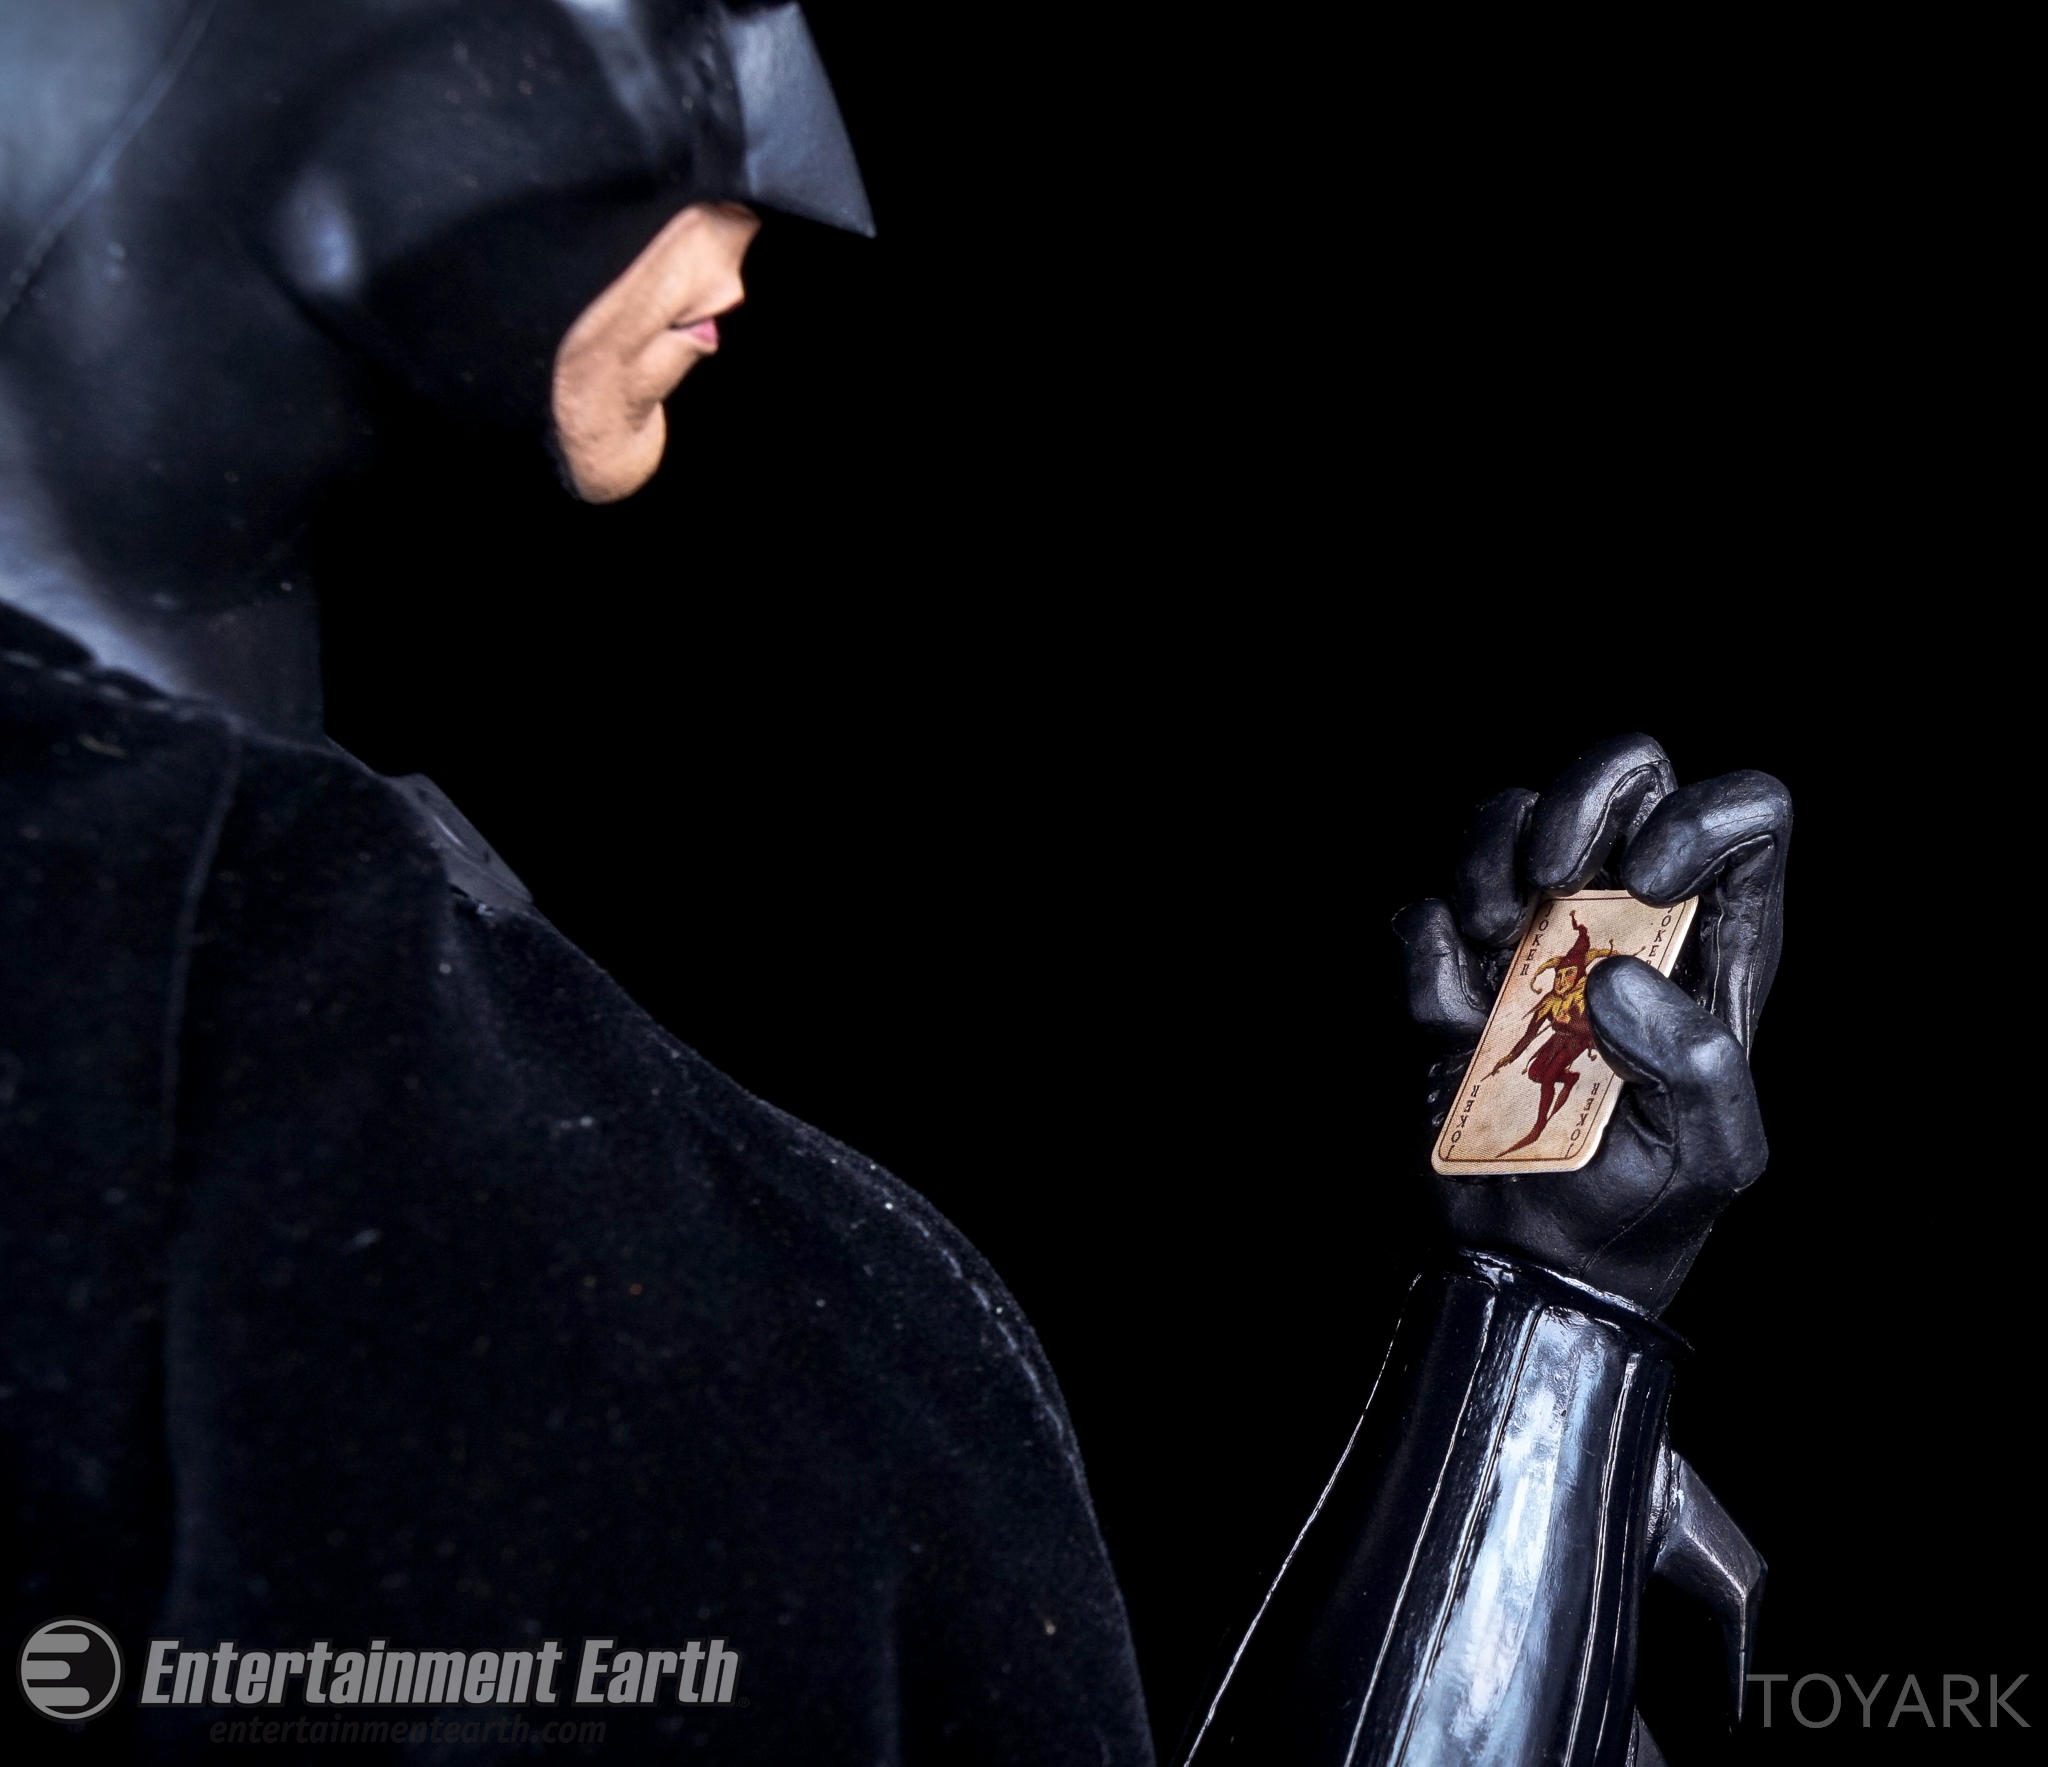 http://news.toyark.com/wp-content/uploads/sites/4/2016/07/NECA-Batman-Begins-045.jpg